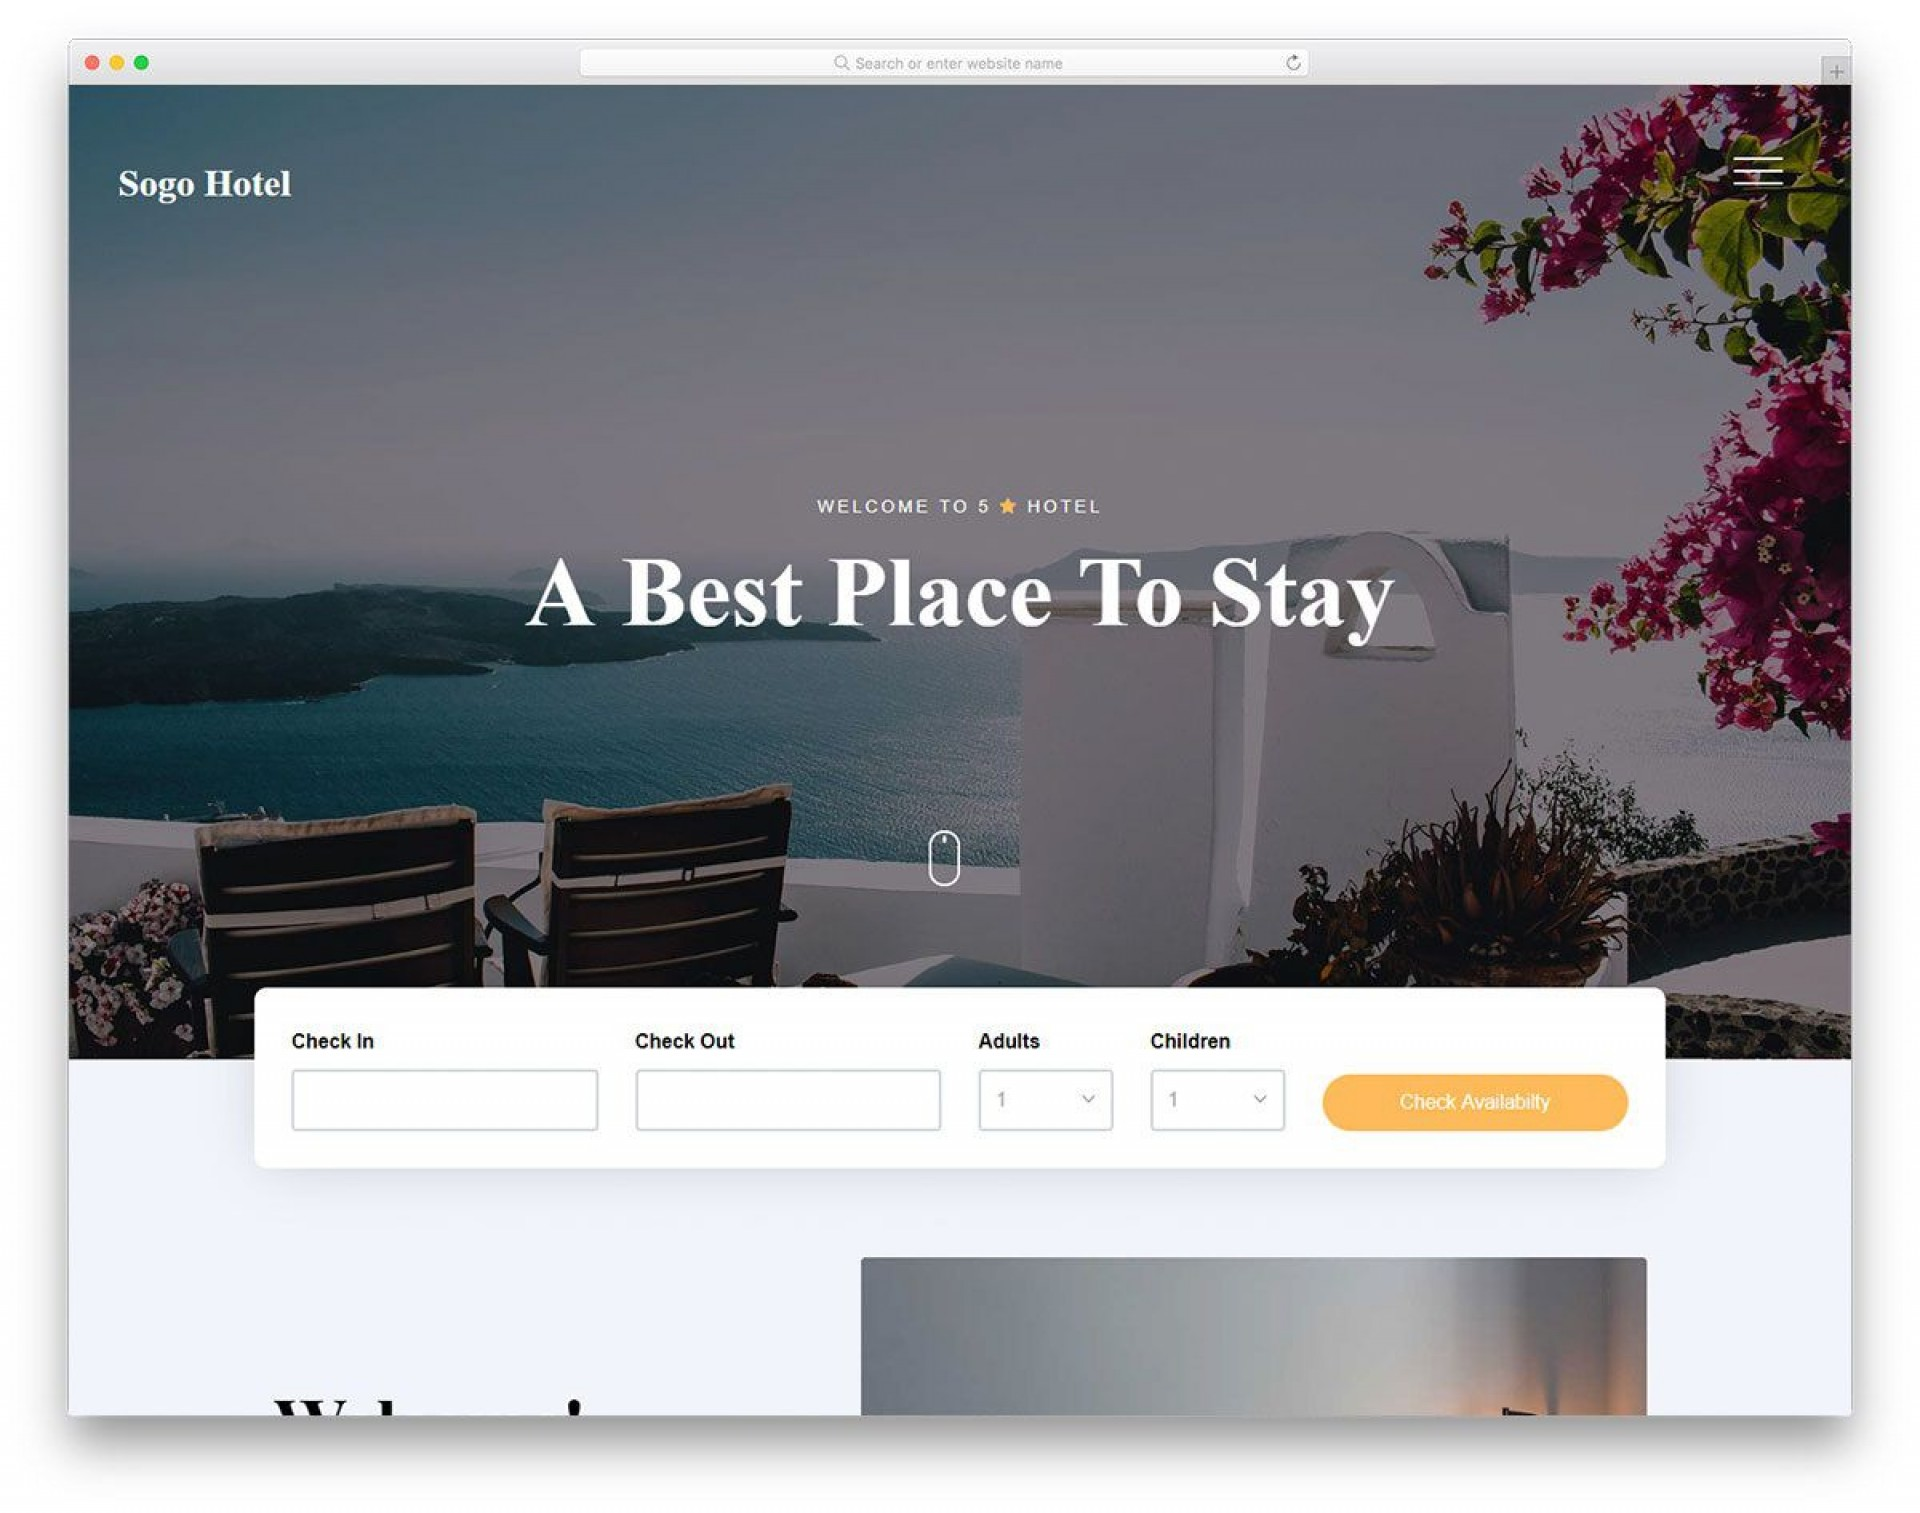 008 Stunning Hotel Website Template Html Free Download Picture  With Cs Responsive Jquery And Restaurant1920